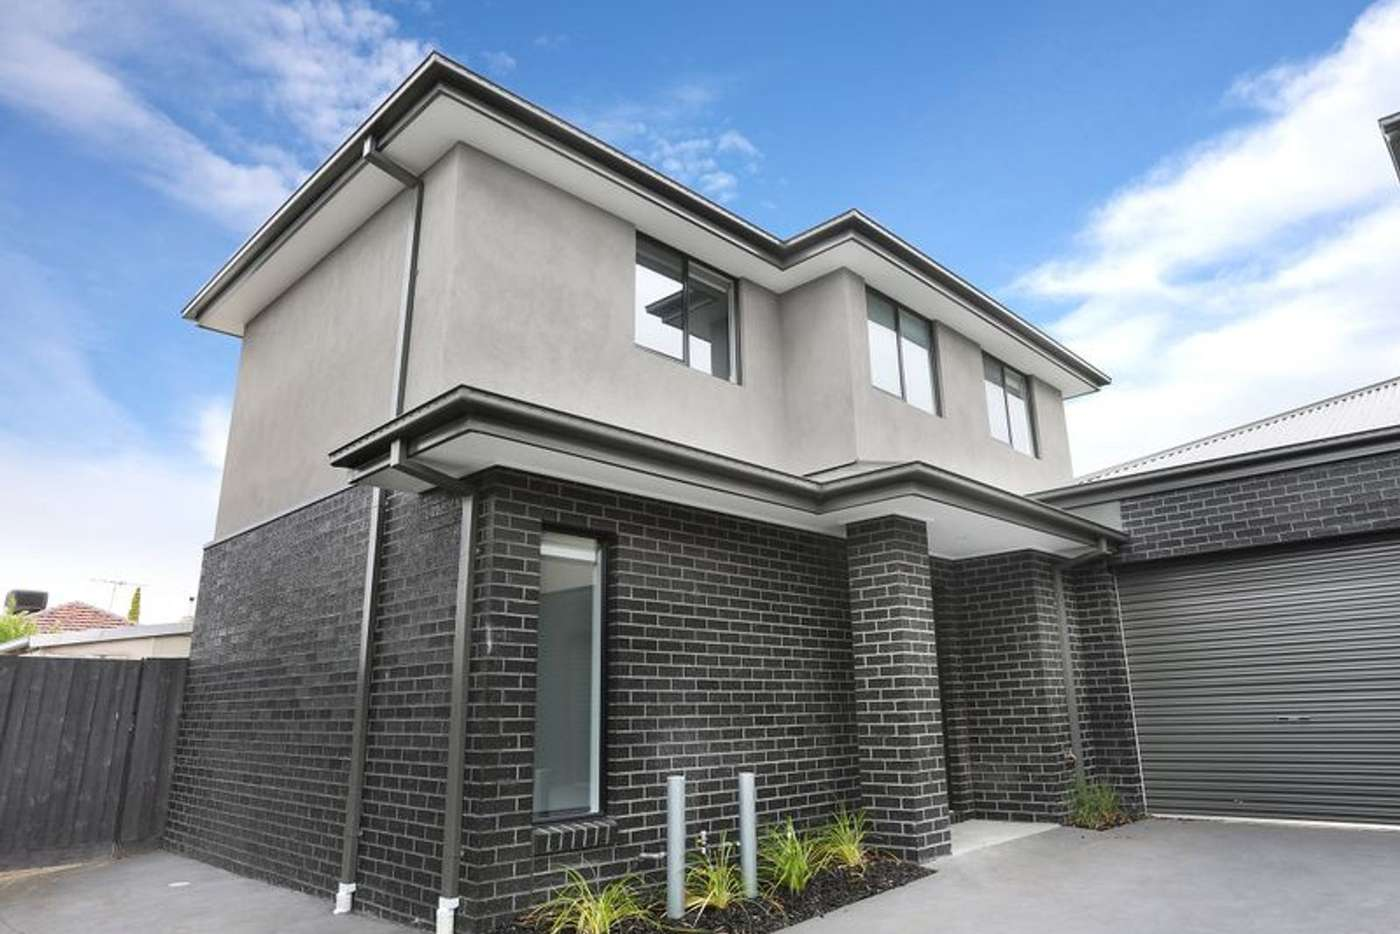 Main view of Homely townhouse listing, 5/635-637 Ballarat Road, Albion VIC 3020